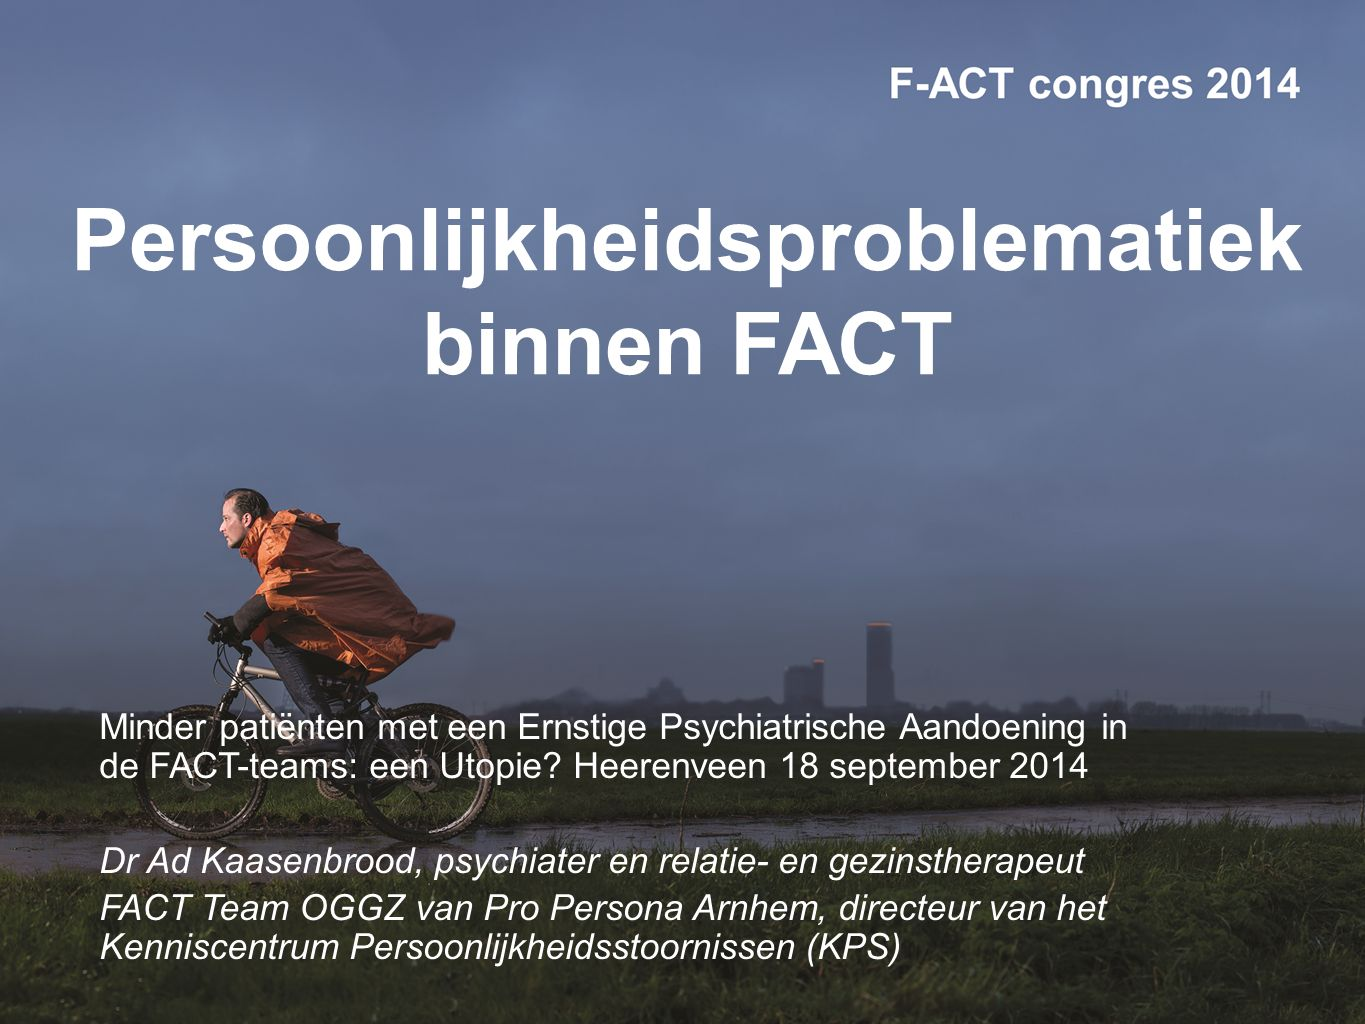 www.factcongres.nl PD = BPD (?) 1.Frantic efforts to avoid real or imagined abandonment 2.A pattern of unstable and intense interpersonal relationships characterized by alternating between extremes of idealization and devaluation 3.Identity disturbance: markedly and persistently unstable self-image or sense of self 4.Impulsivity in at least two areas that are potentially self-damaging (e.g., substance abuse, binge eating, and reckless driving) substance abuse 5.Recurrent suicidal behavior, gestures, or threats, or self-mutilating behavior 6.Affective instability due to a marked reactivity of mood (e.g., intense episodic dysphoria, irritability, or anxiety usually lasting a few hours and only rarely more than a few days) 7.Chronic feelings of emptiness 8.Inappropriate, intense anger or difficulty controlling anger (e.g., frequent displays of temper, constant anger, recurrent physical fights)controlling anger 9.Transient, stress-related paranoid ideation or severe dissociative symptoms